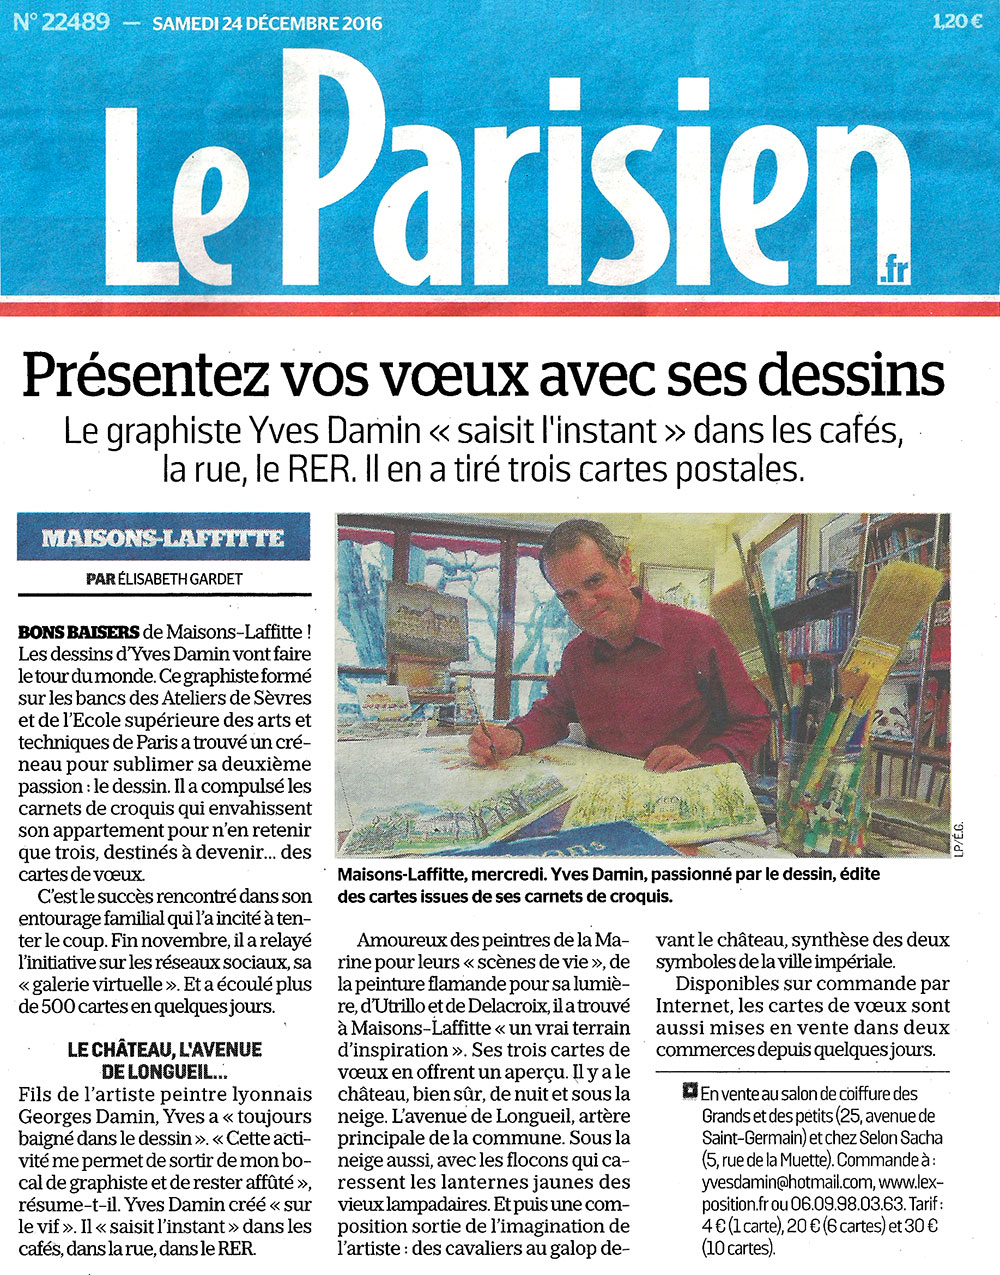 leparisien_yvesdamin_light